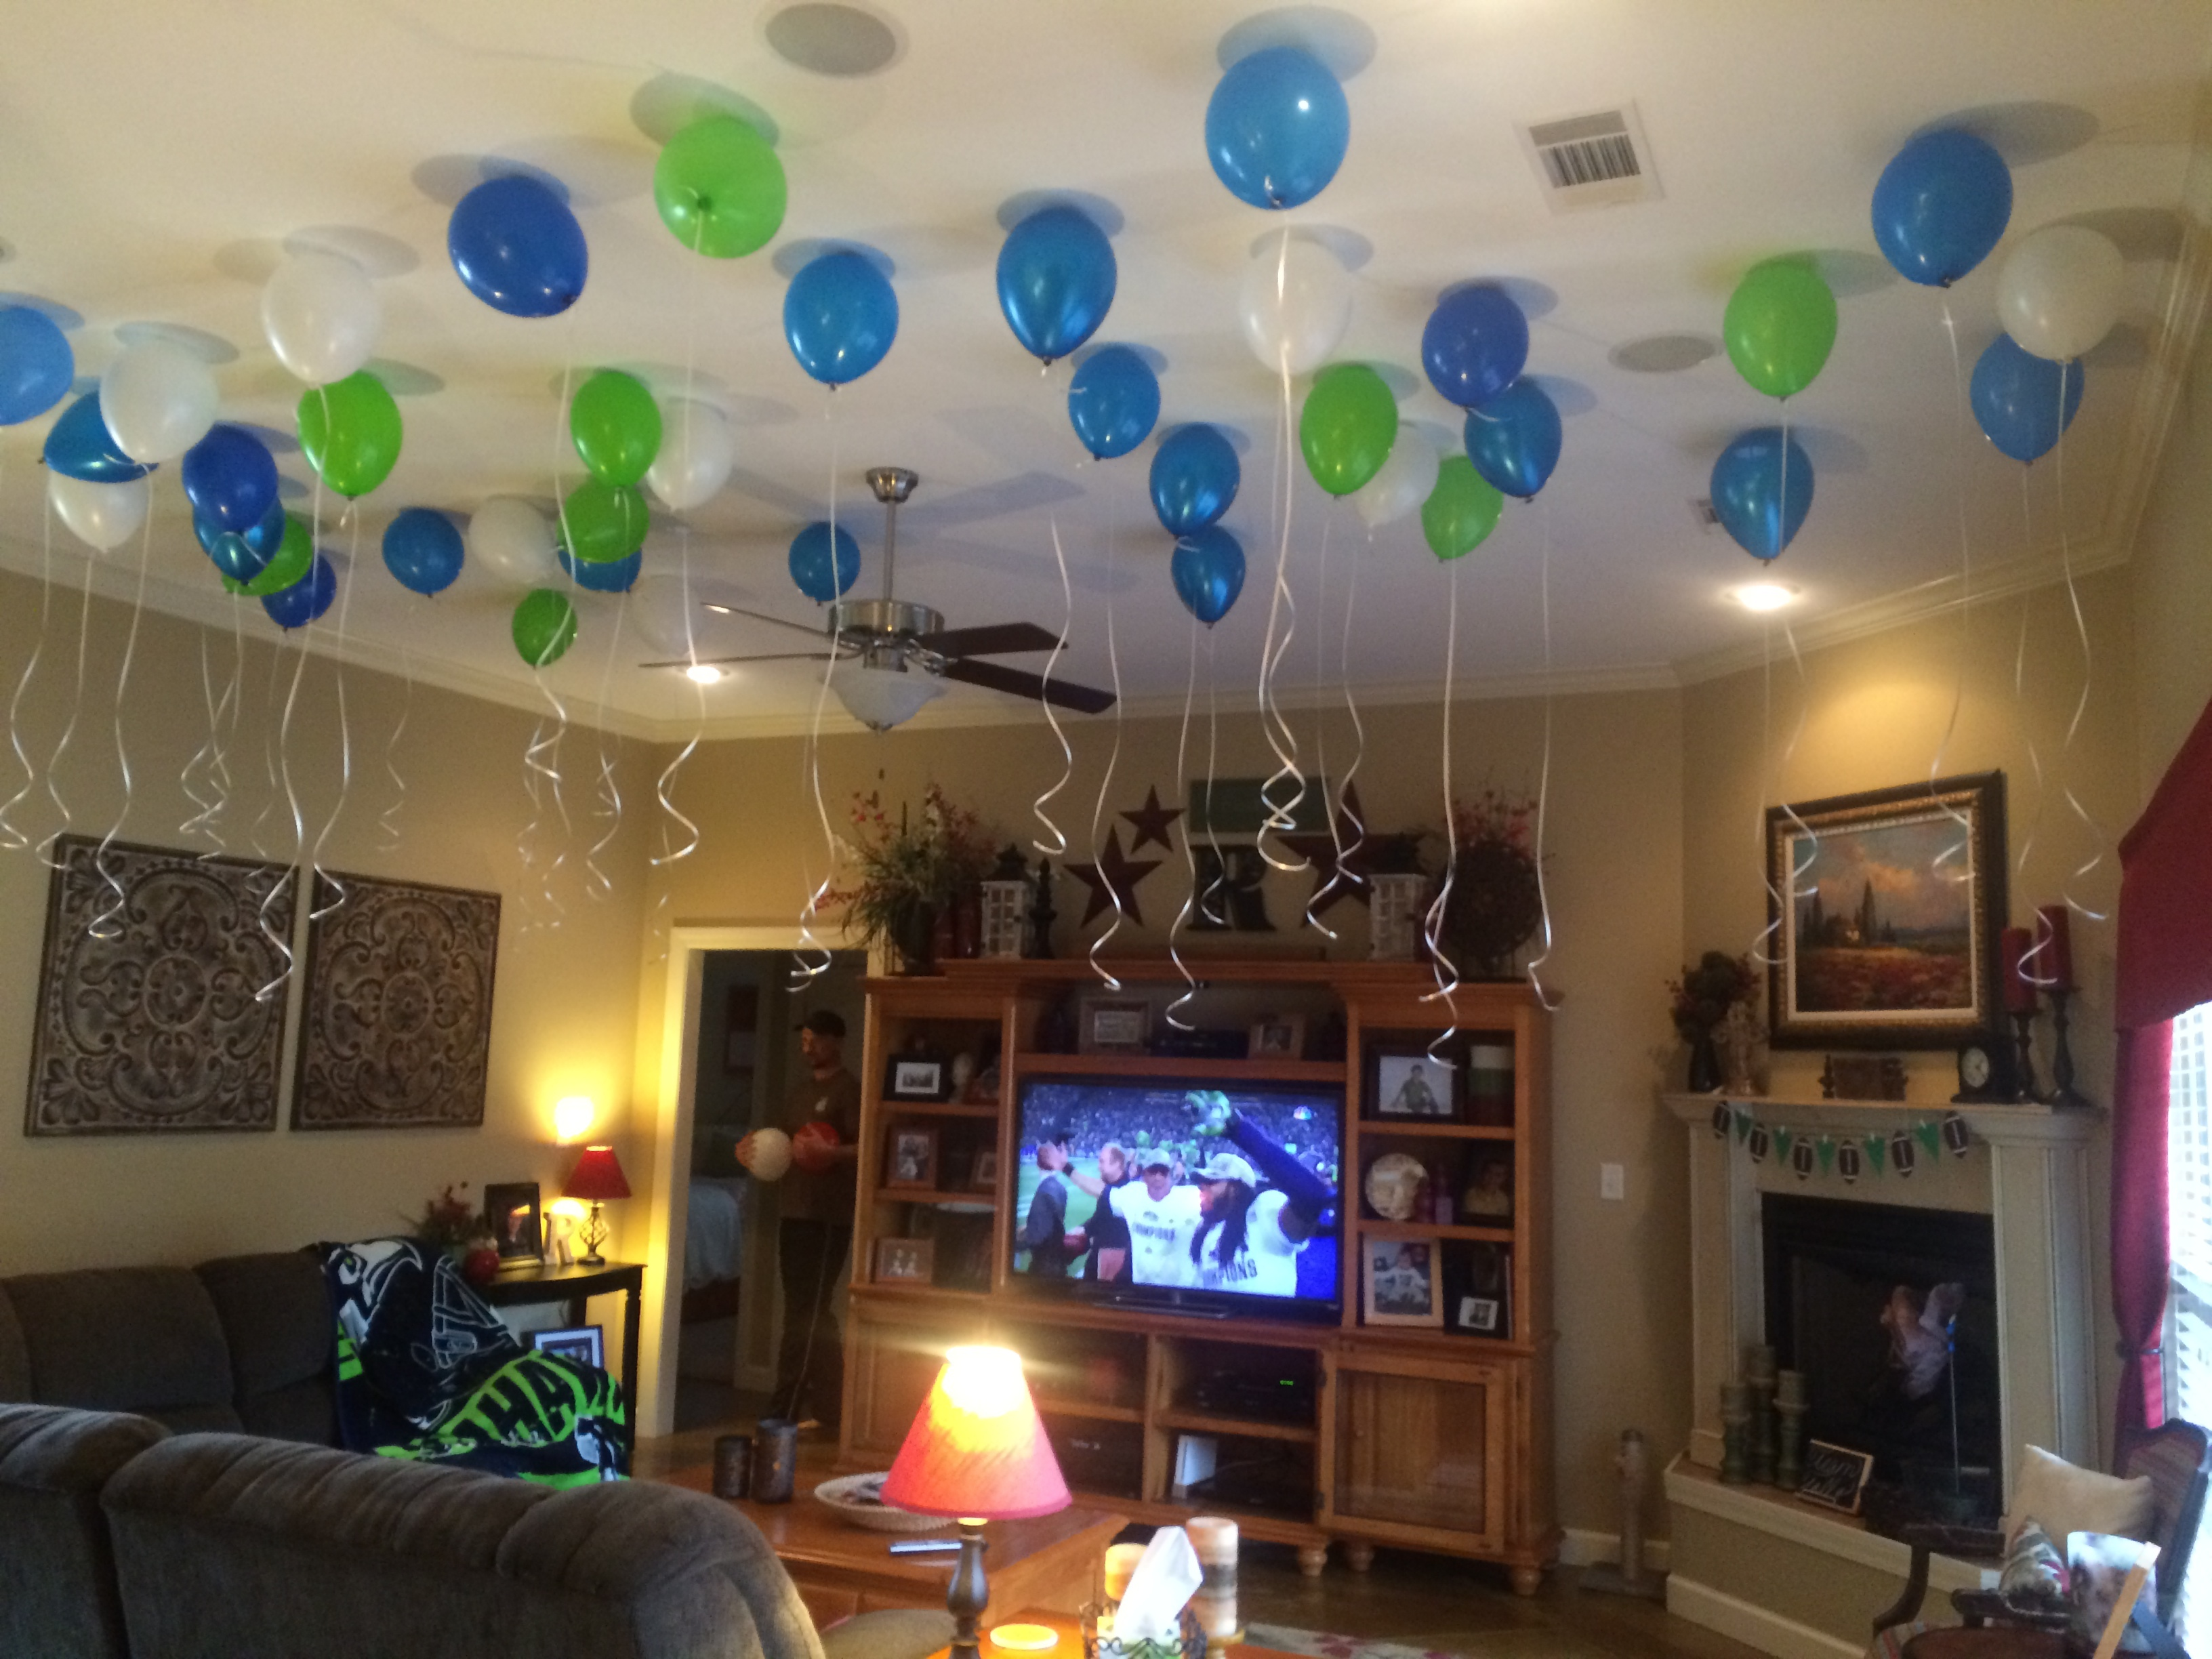 Football party not just a man 39 s game easy peasy pleasy for Room decor ideas for birthday